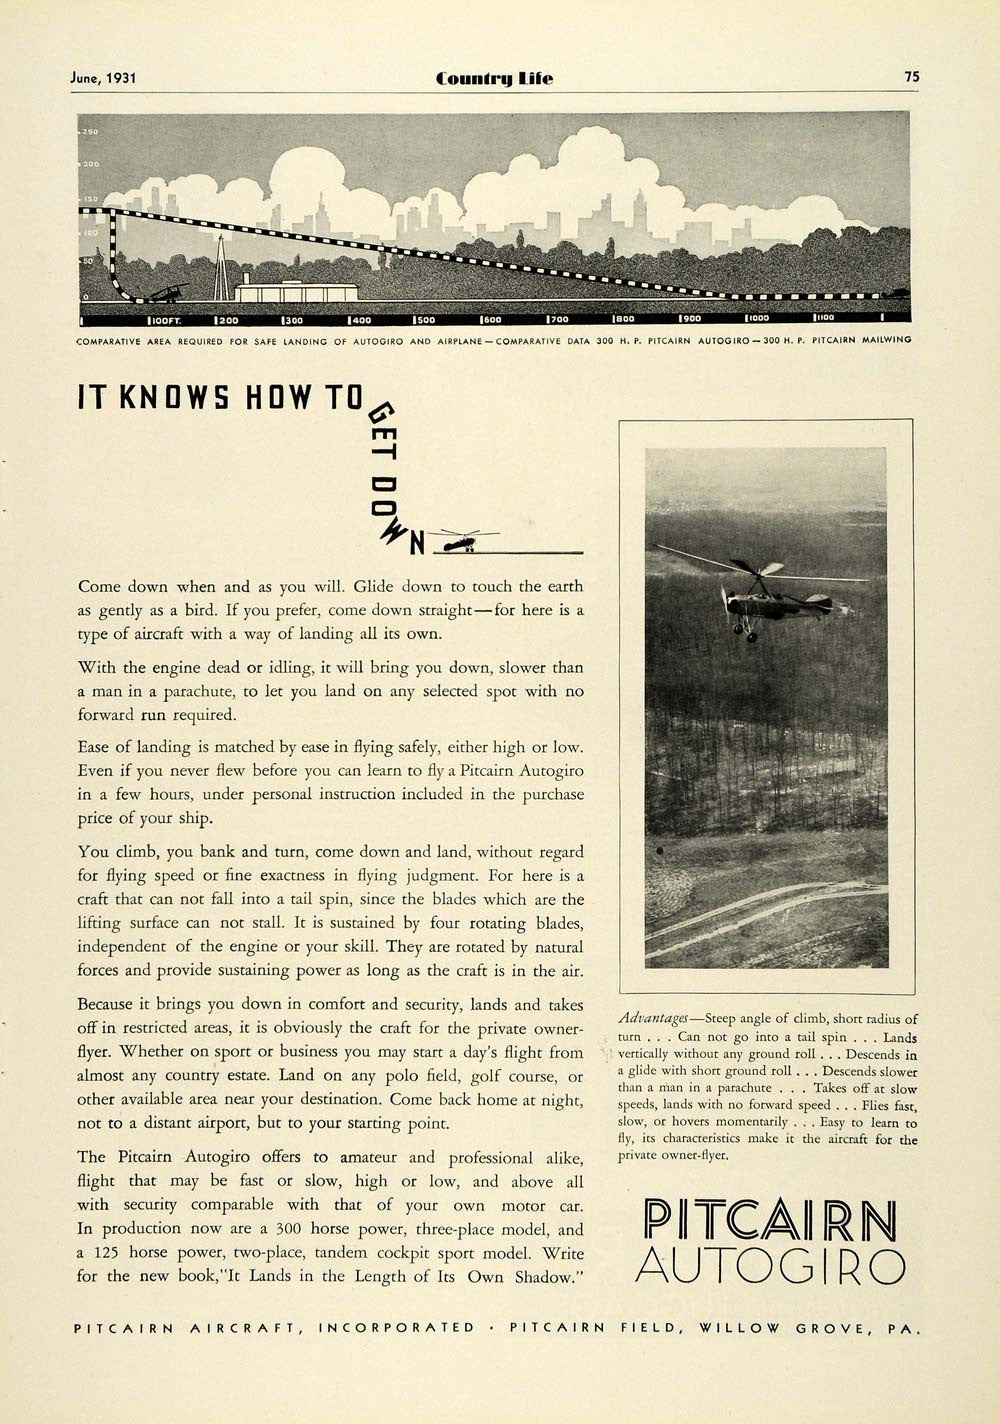 1931 Ad Pitcairn Autogiro Private Airplane Aircraft Pilot Aviation Flight COL2 - Period Paper